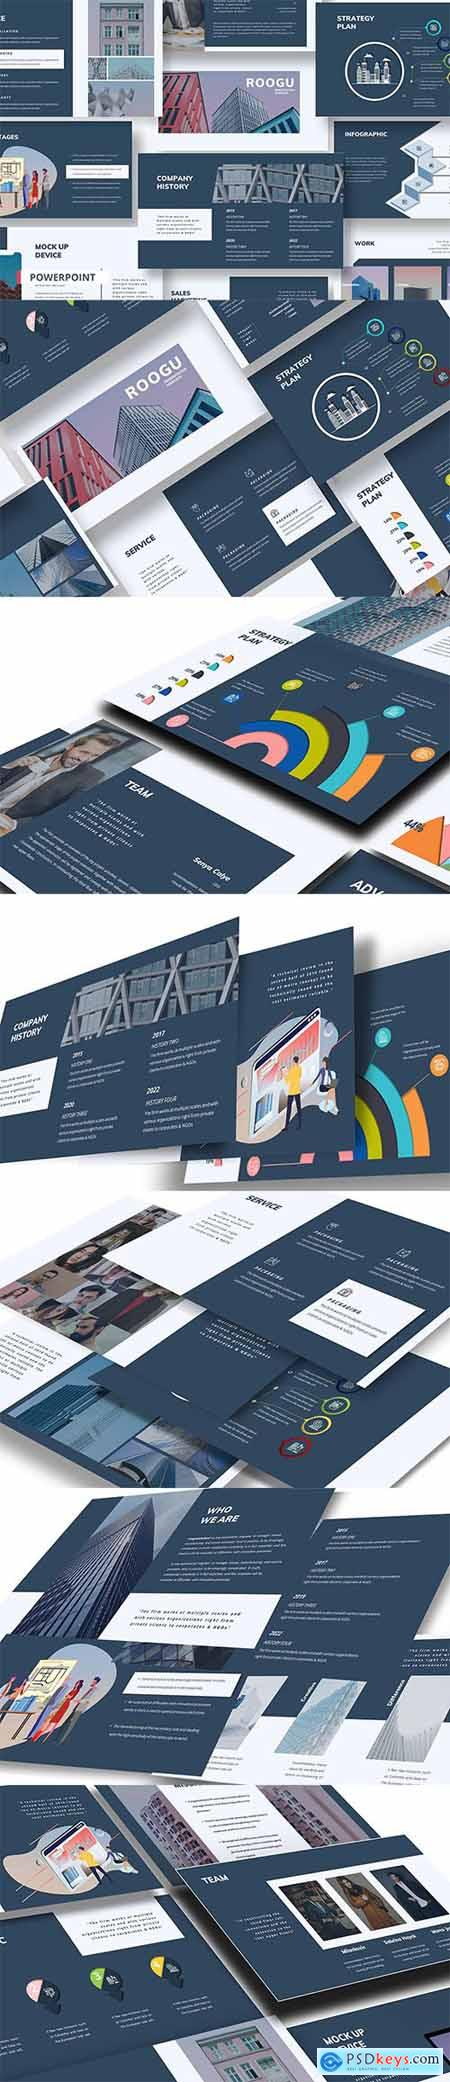 TECHNOLOGY BUSINESS - PowerPoint, Keynote, Google Slides Templates